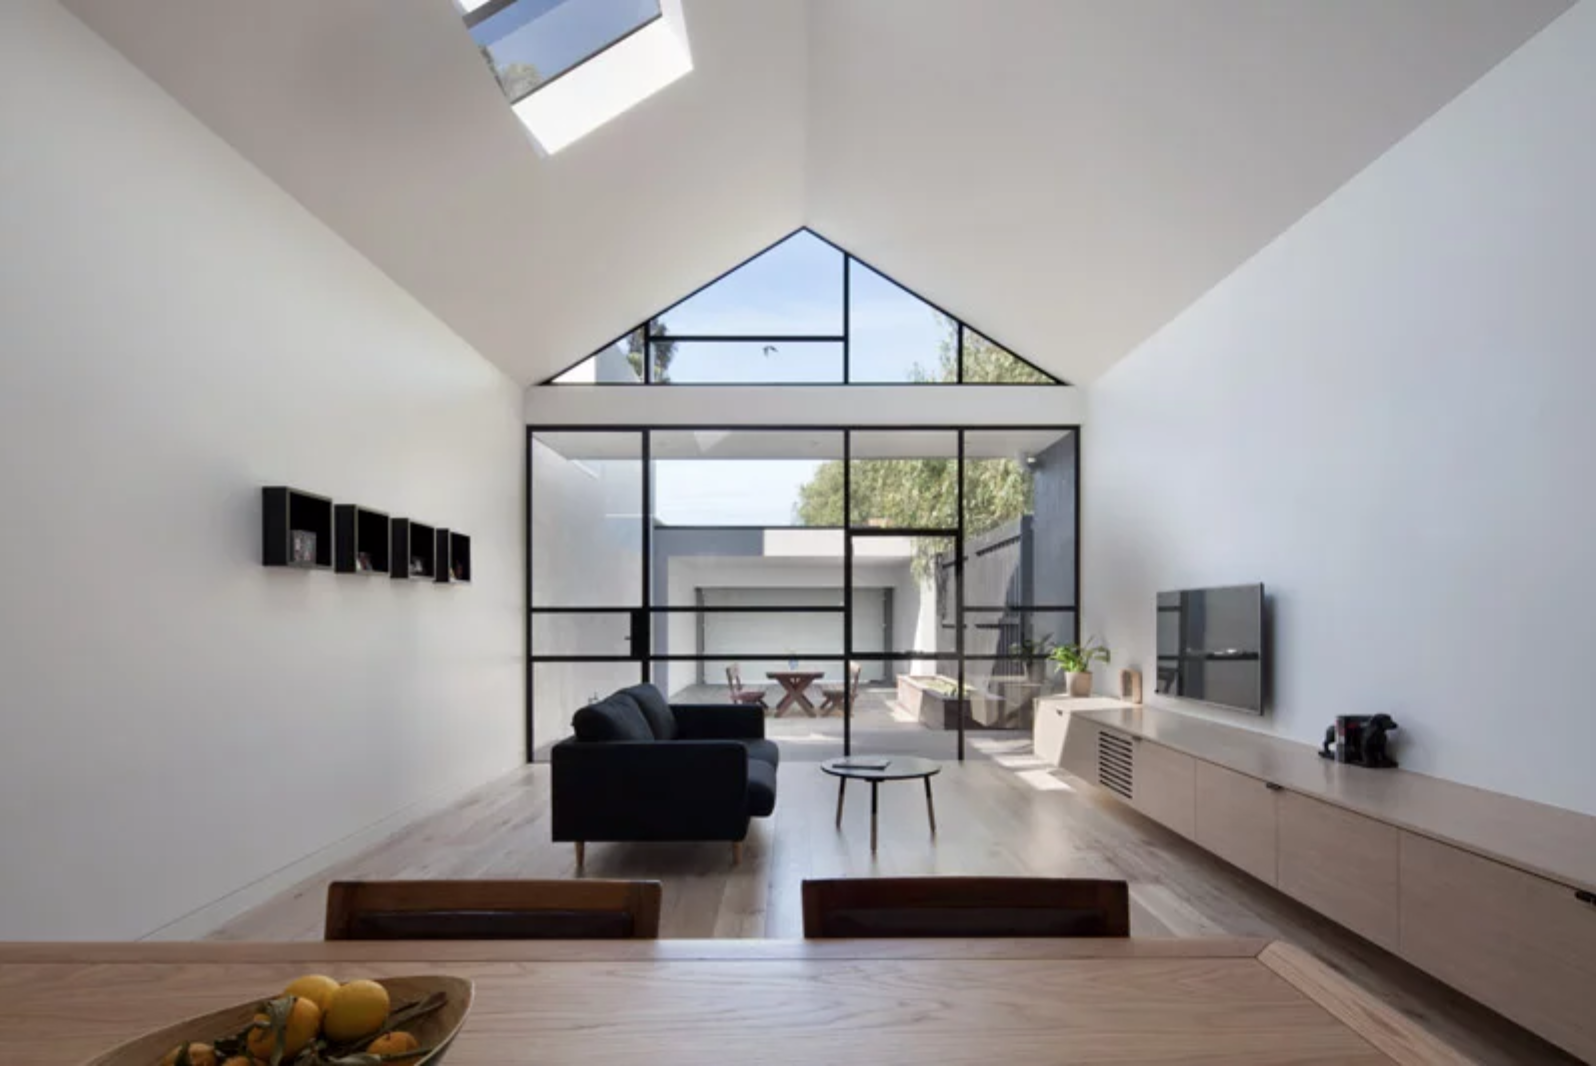 Open plan minimal apartment, with uninterrupted view from the kitchen to the patio, great example of biophilic design.